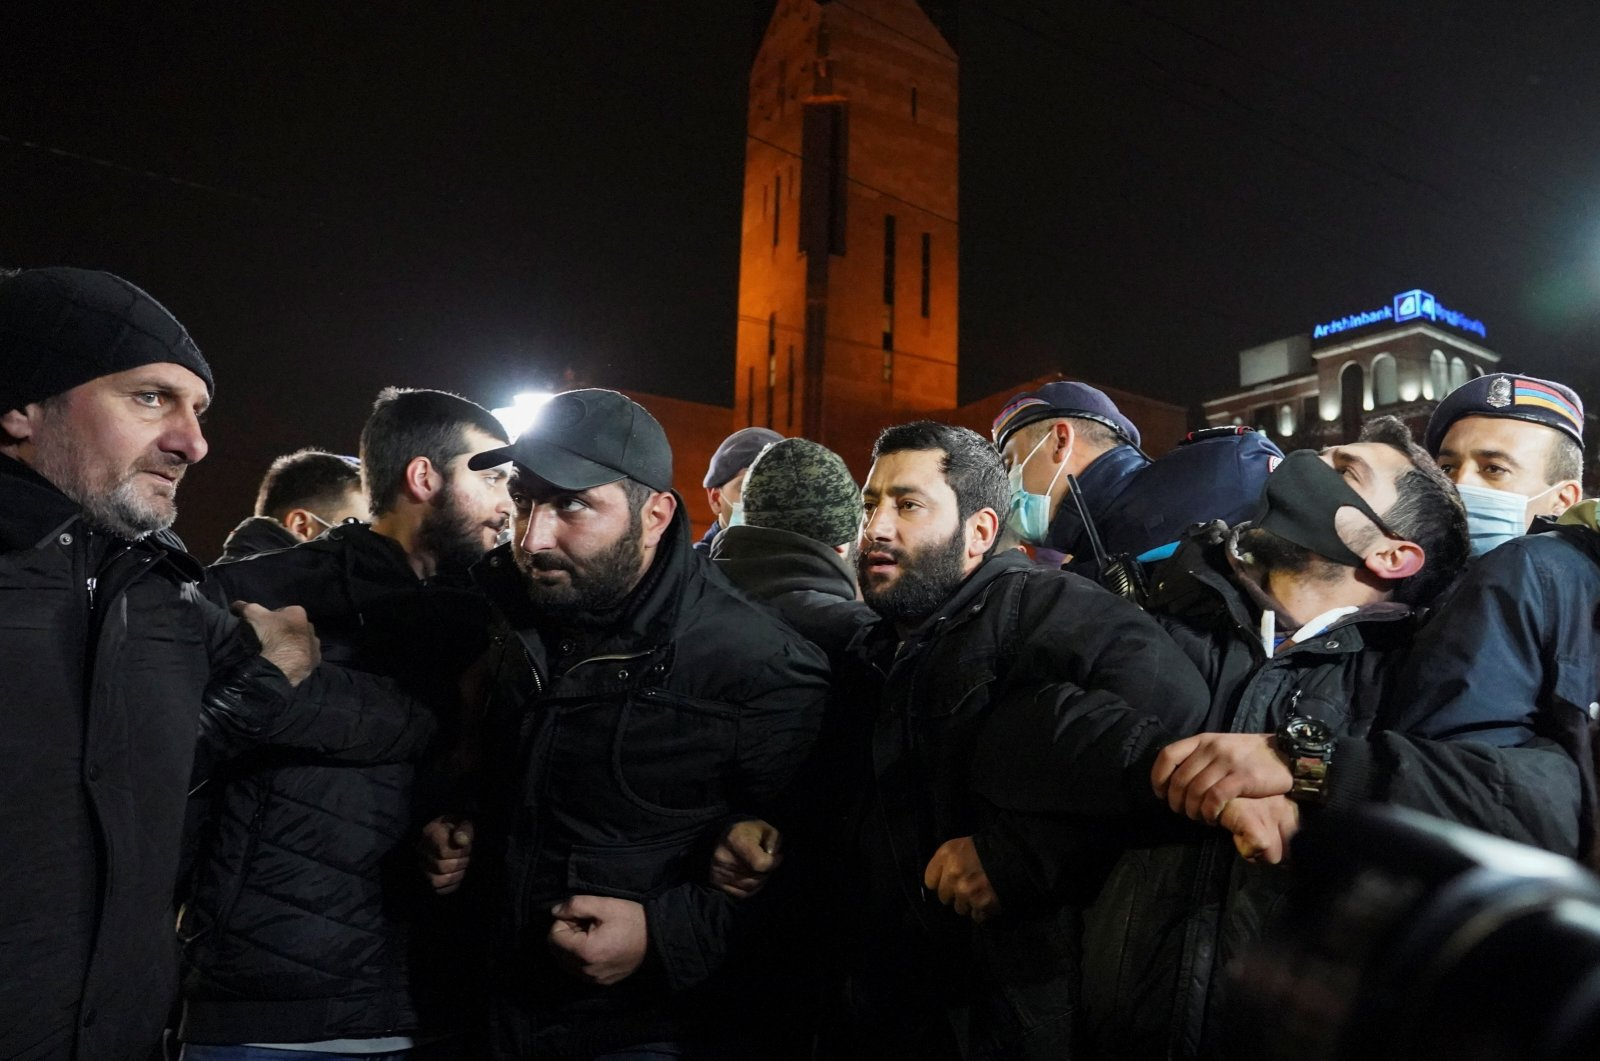 Participants attempt to block a street during an opposition rally to demand the resignation of Armenian Prime Minister Nikol Pashinian in Yerevan, Armenia, Dec. 3, 2020. (REUTERS Photo)